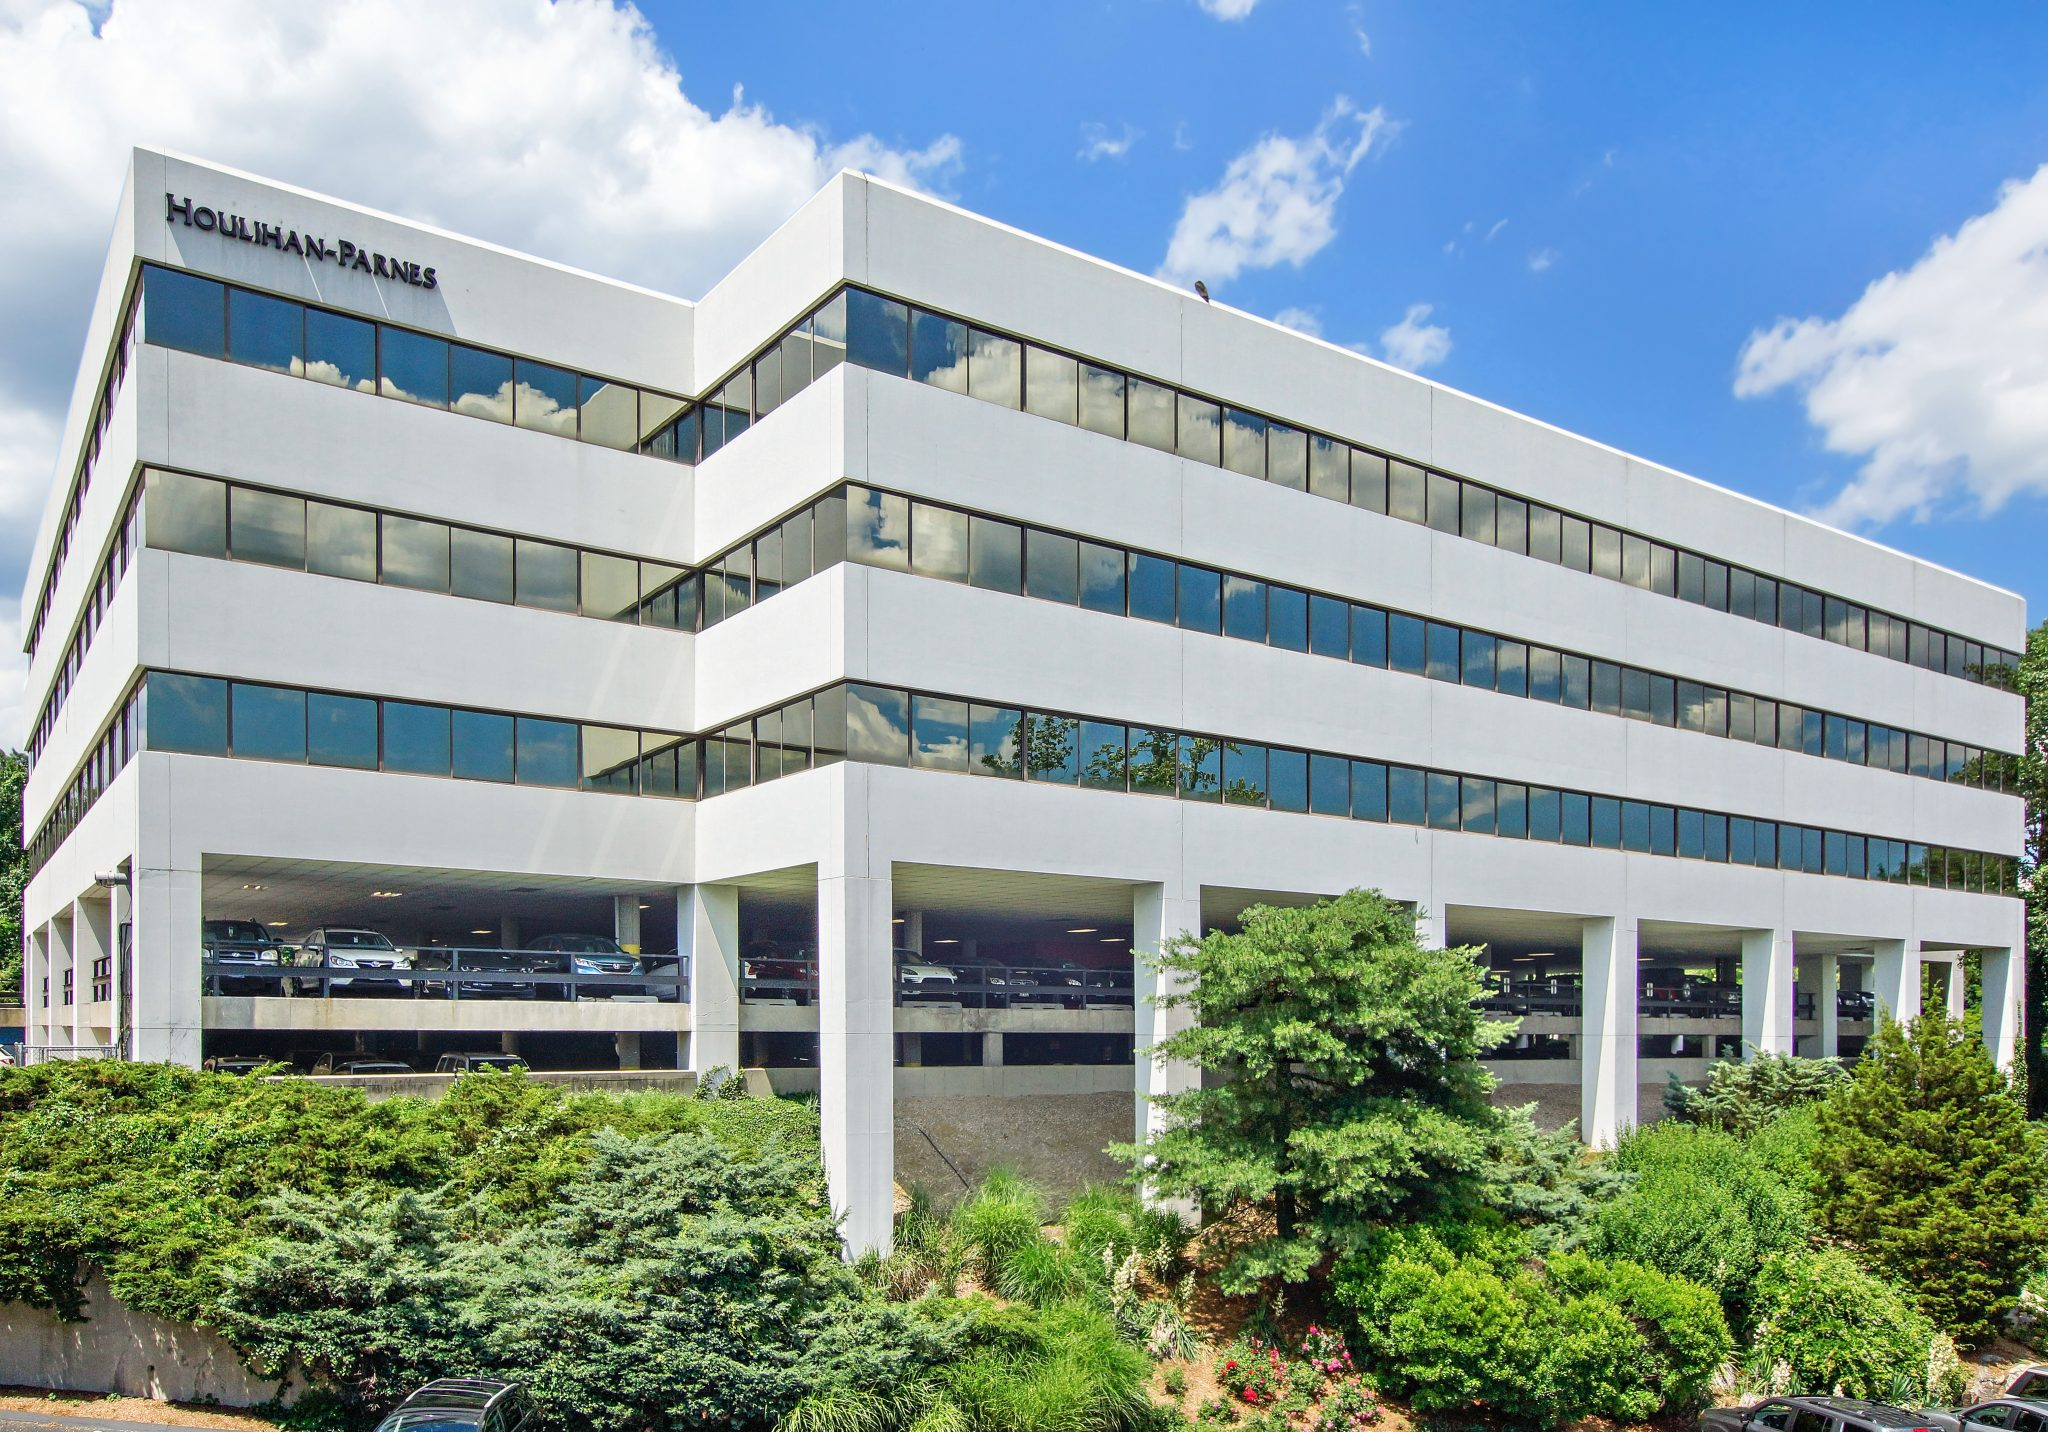 4 West Red Oak Lane – White Plains, NY 10604 – 27,000 sq. ft.